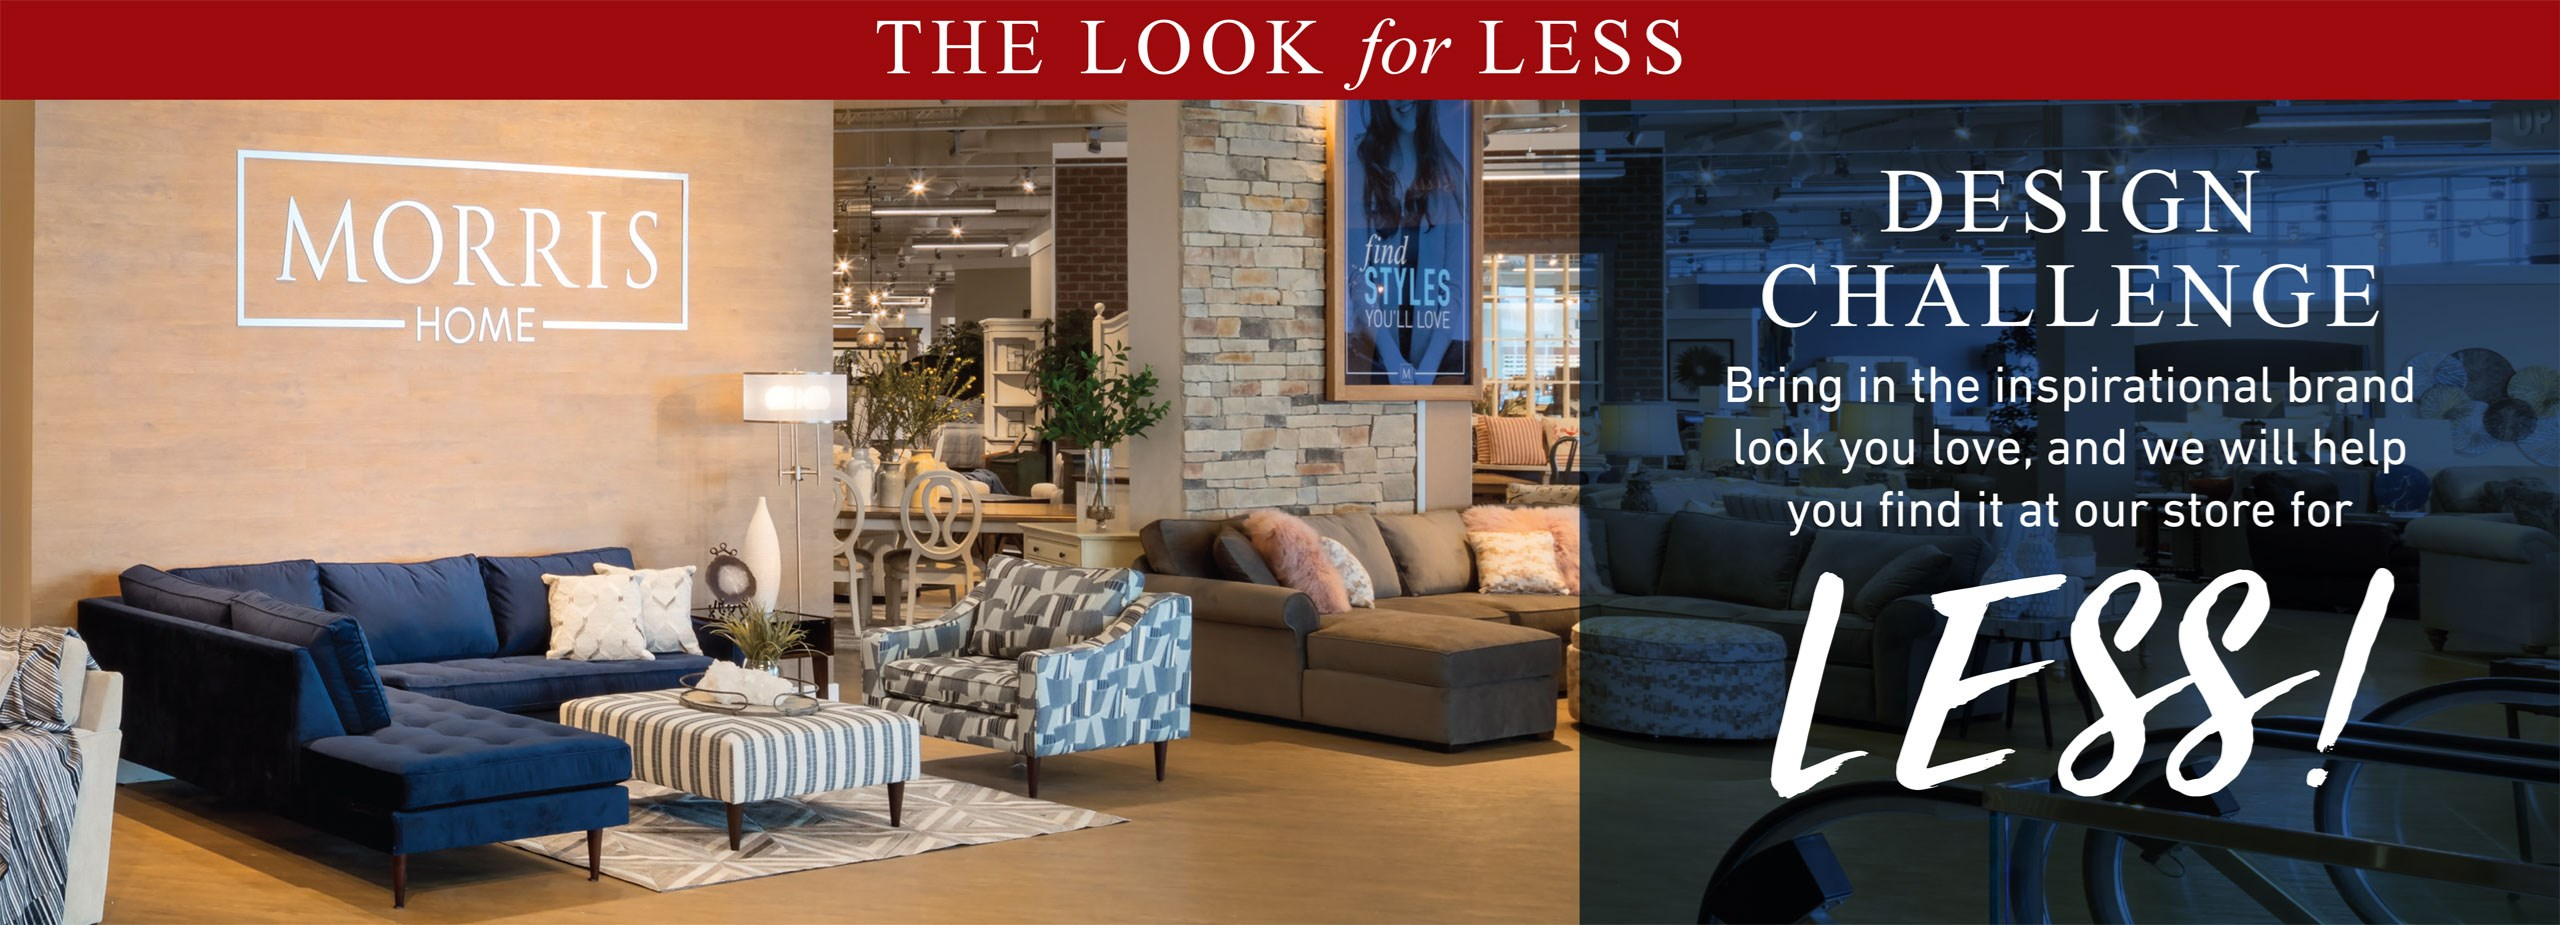 Shop the Look for less